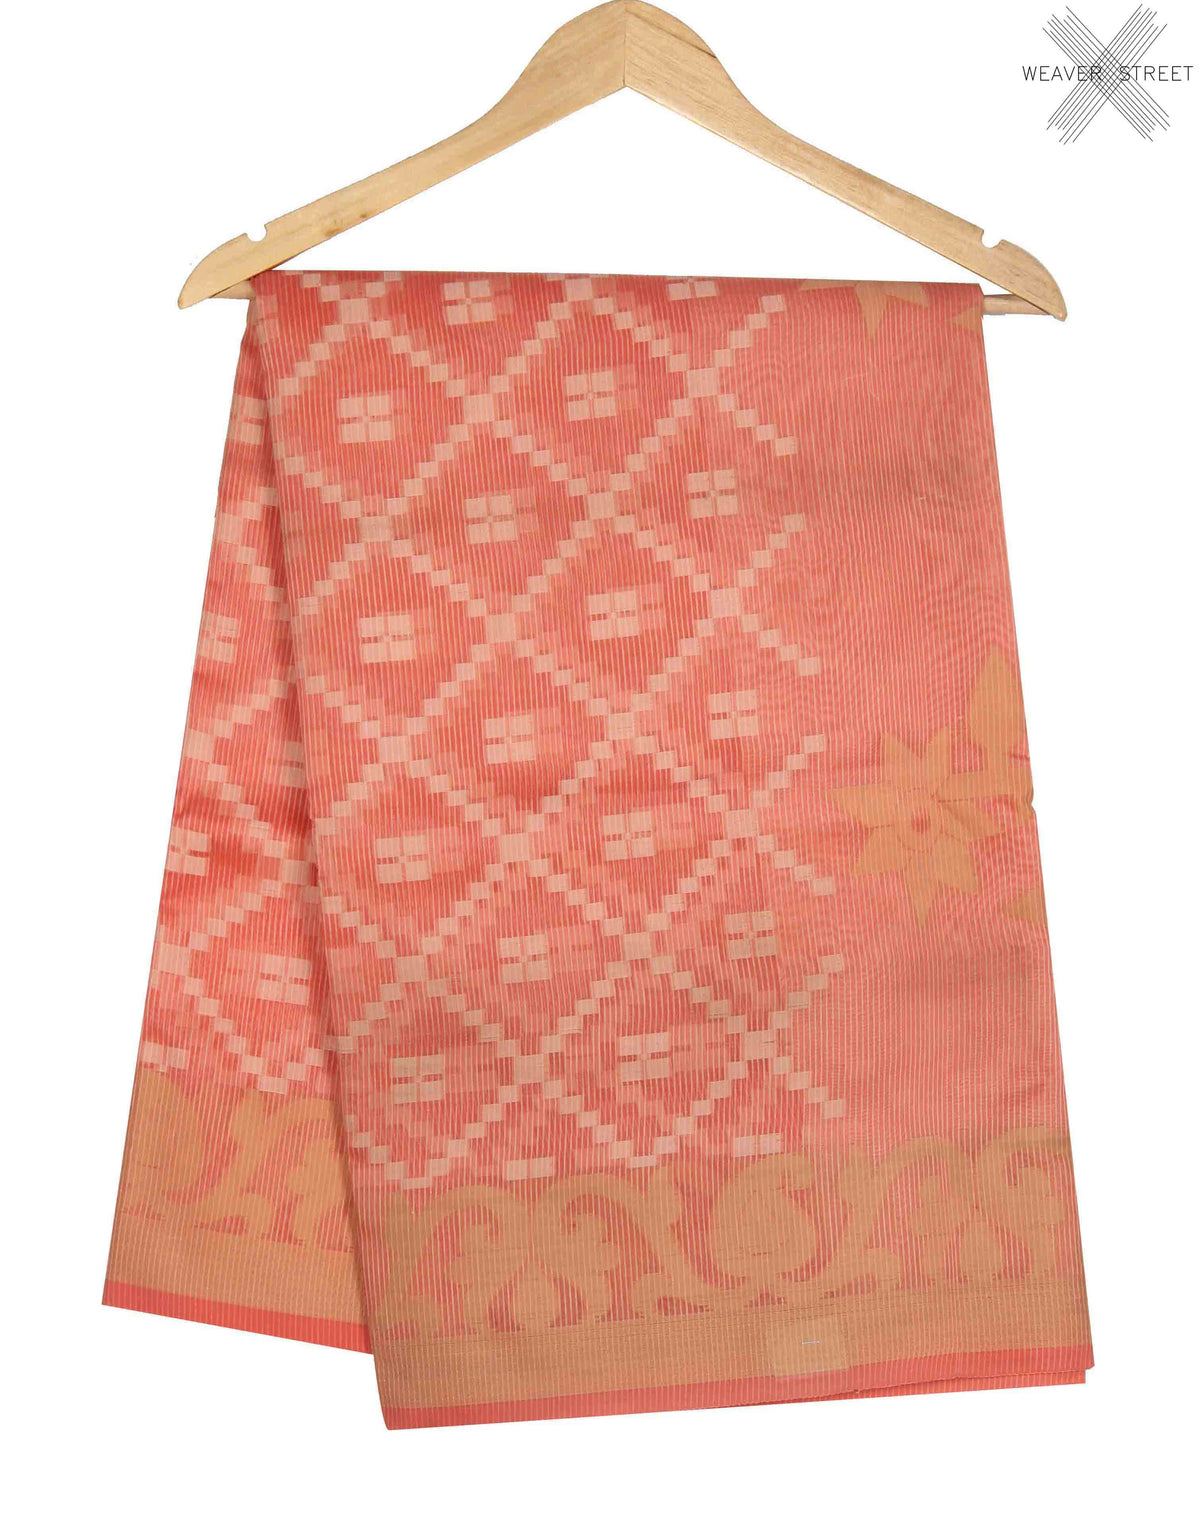 Peach Cotton Supernet Banarasi Saree with grid pattern (1) main